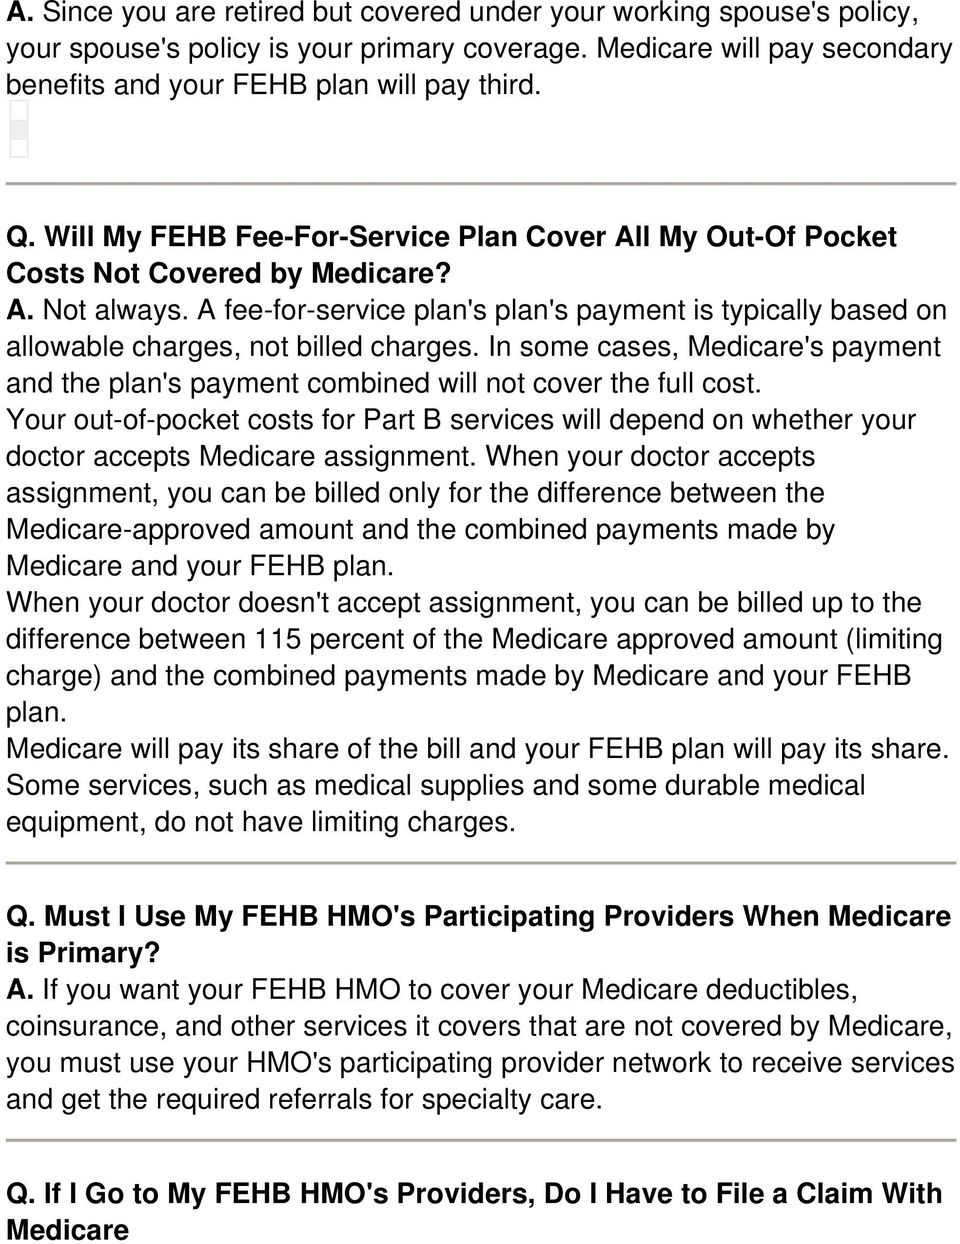 A fee-for-service plan's plan's payment is typically based on allowable charges, not billed charges. In some cases, Medicare's payment and the plan's payment combined will not cover the full cost.